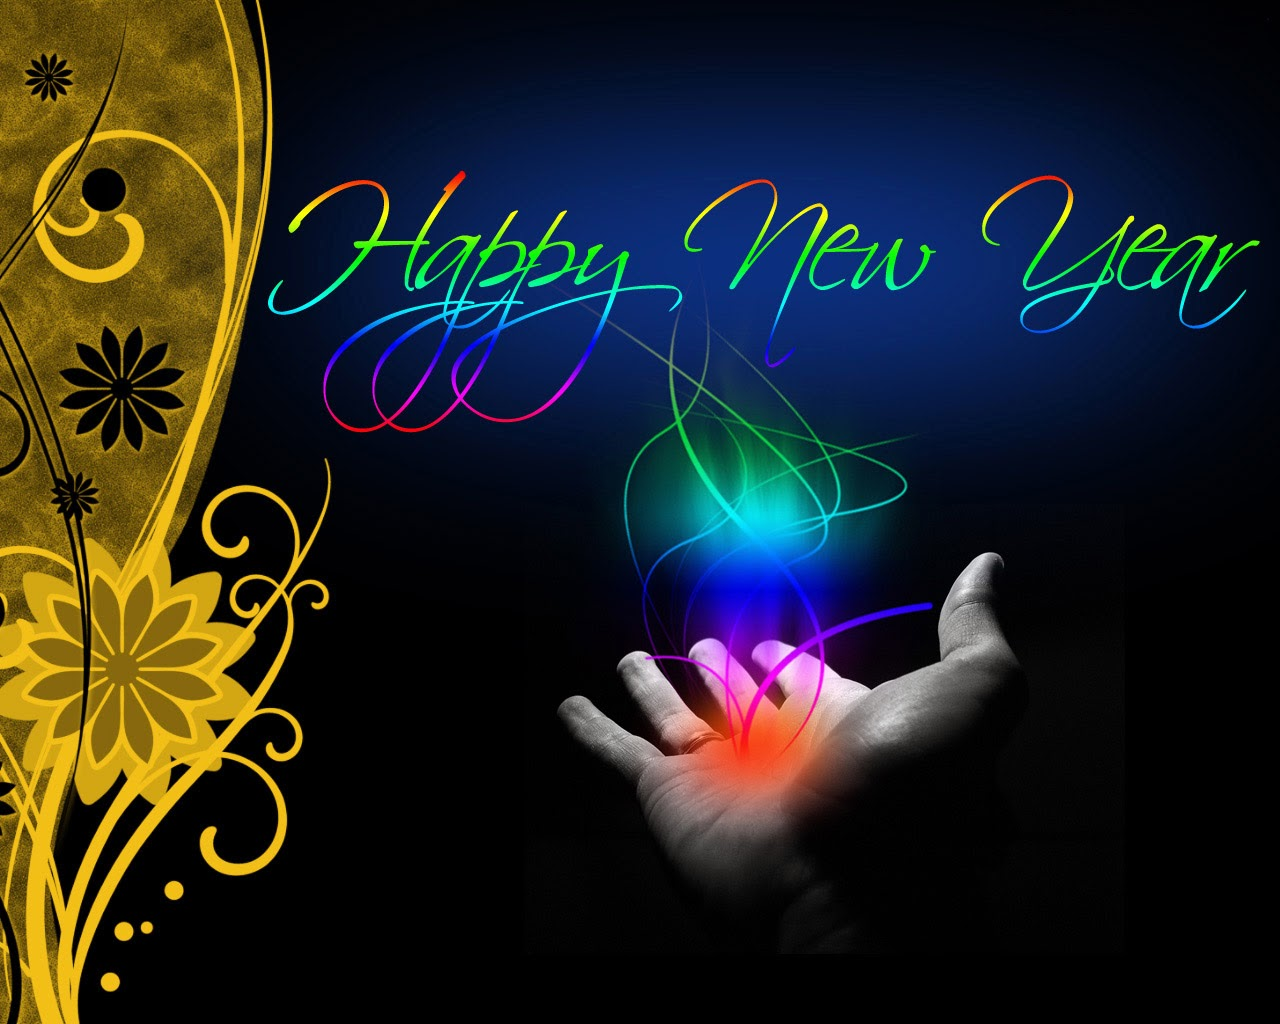 happy-new-year-2014-wishes-greeting-cards1.jpg